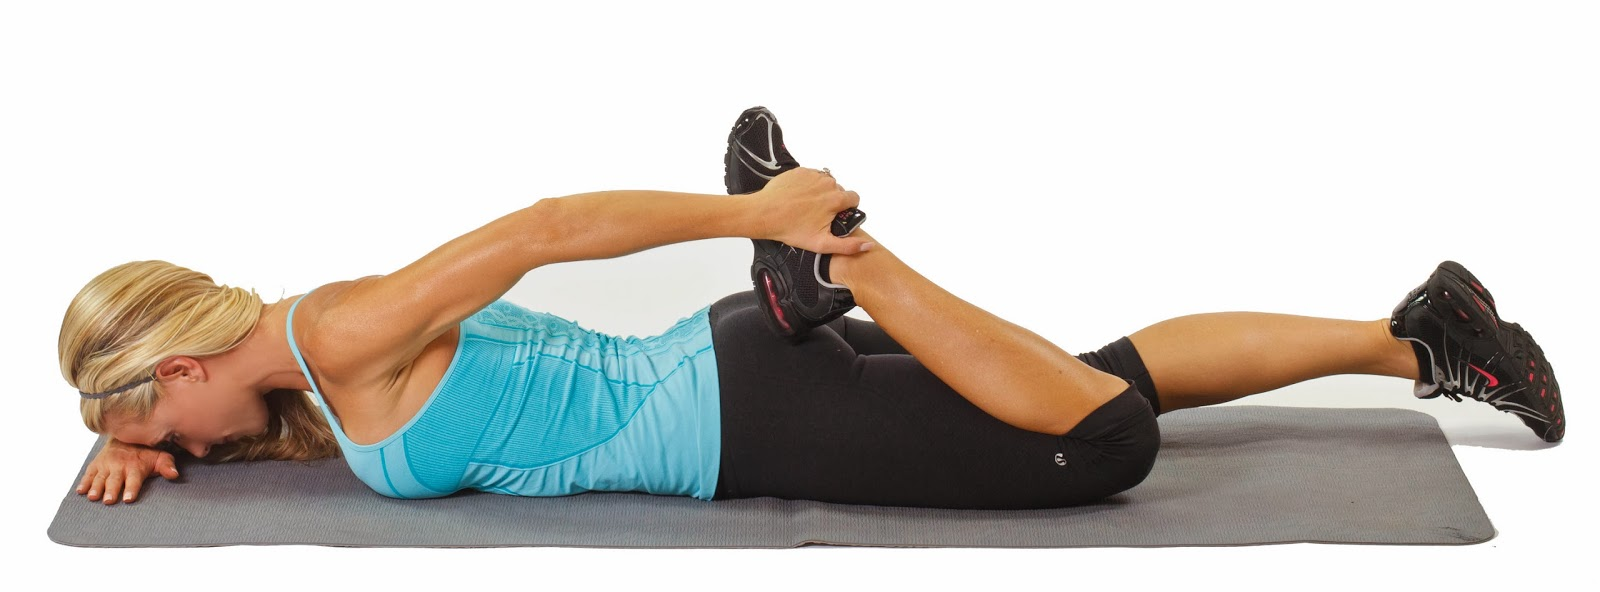 hip flexor stretches for tight hamstrings